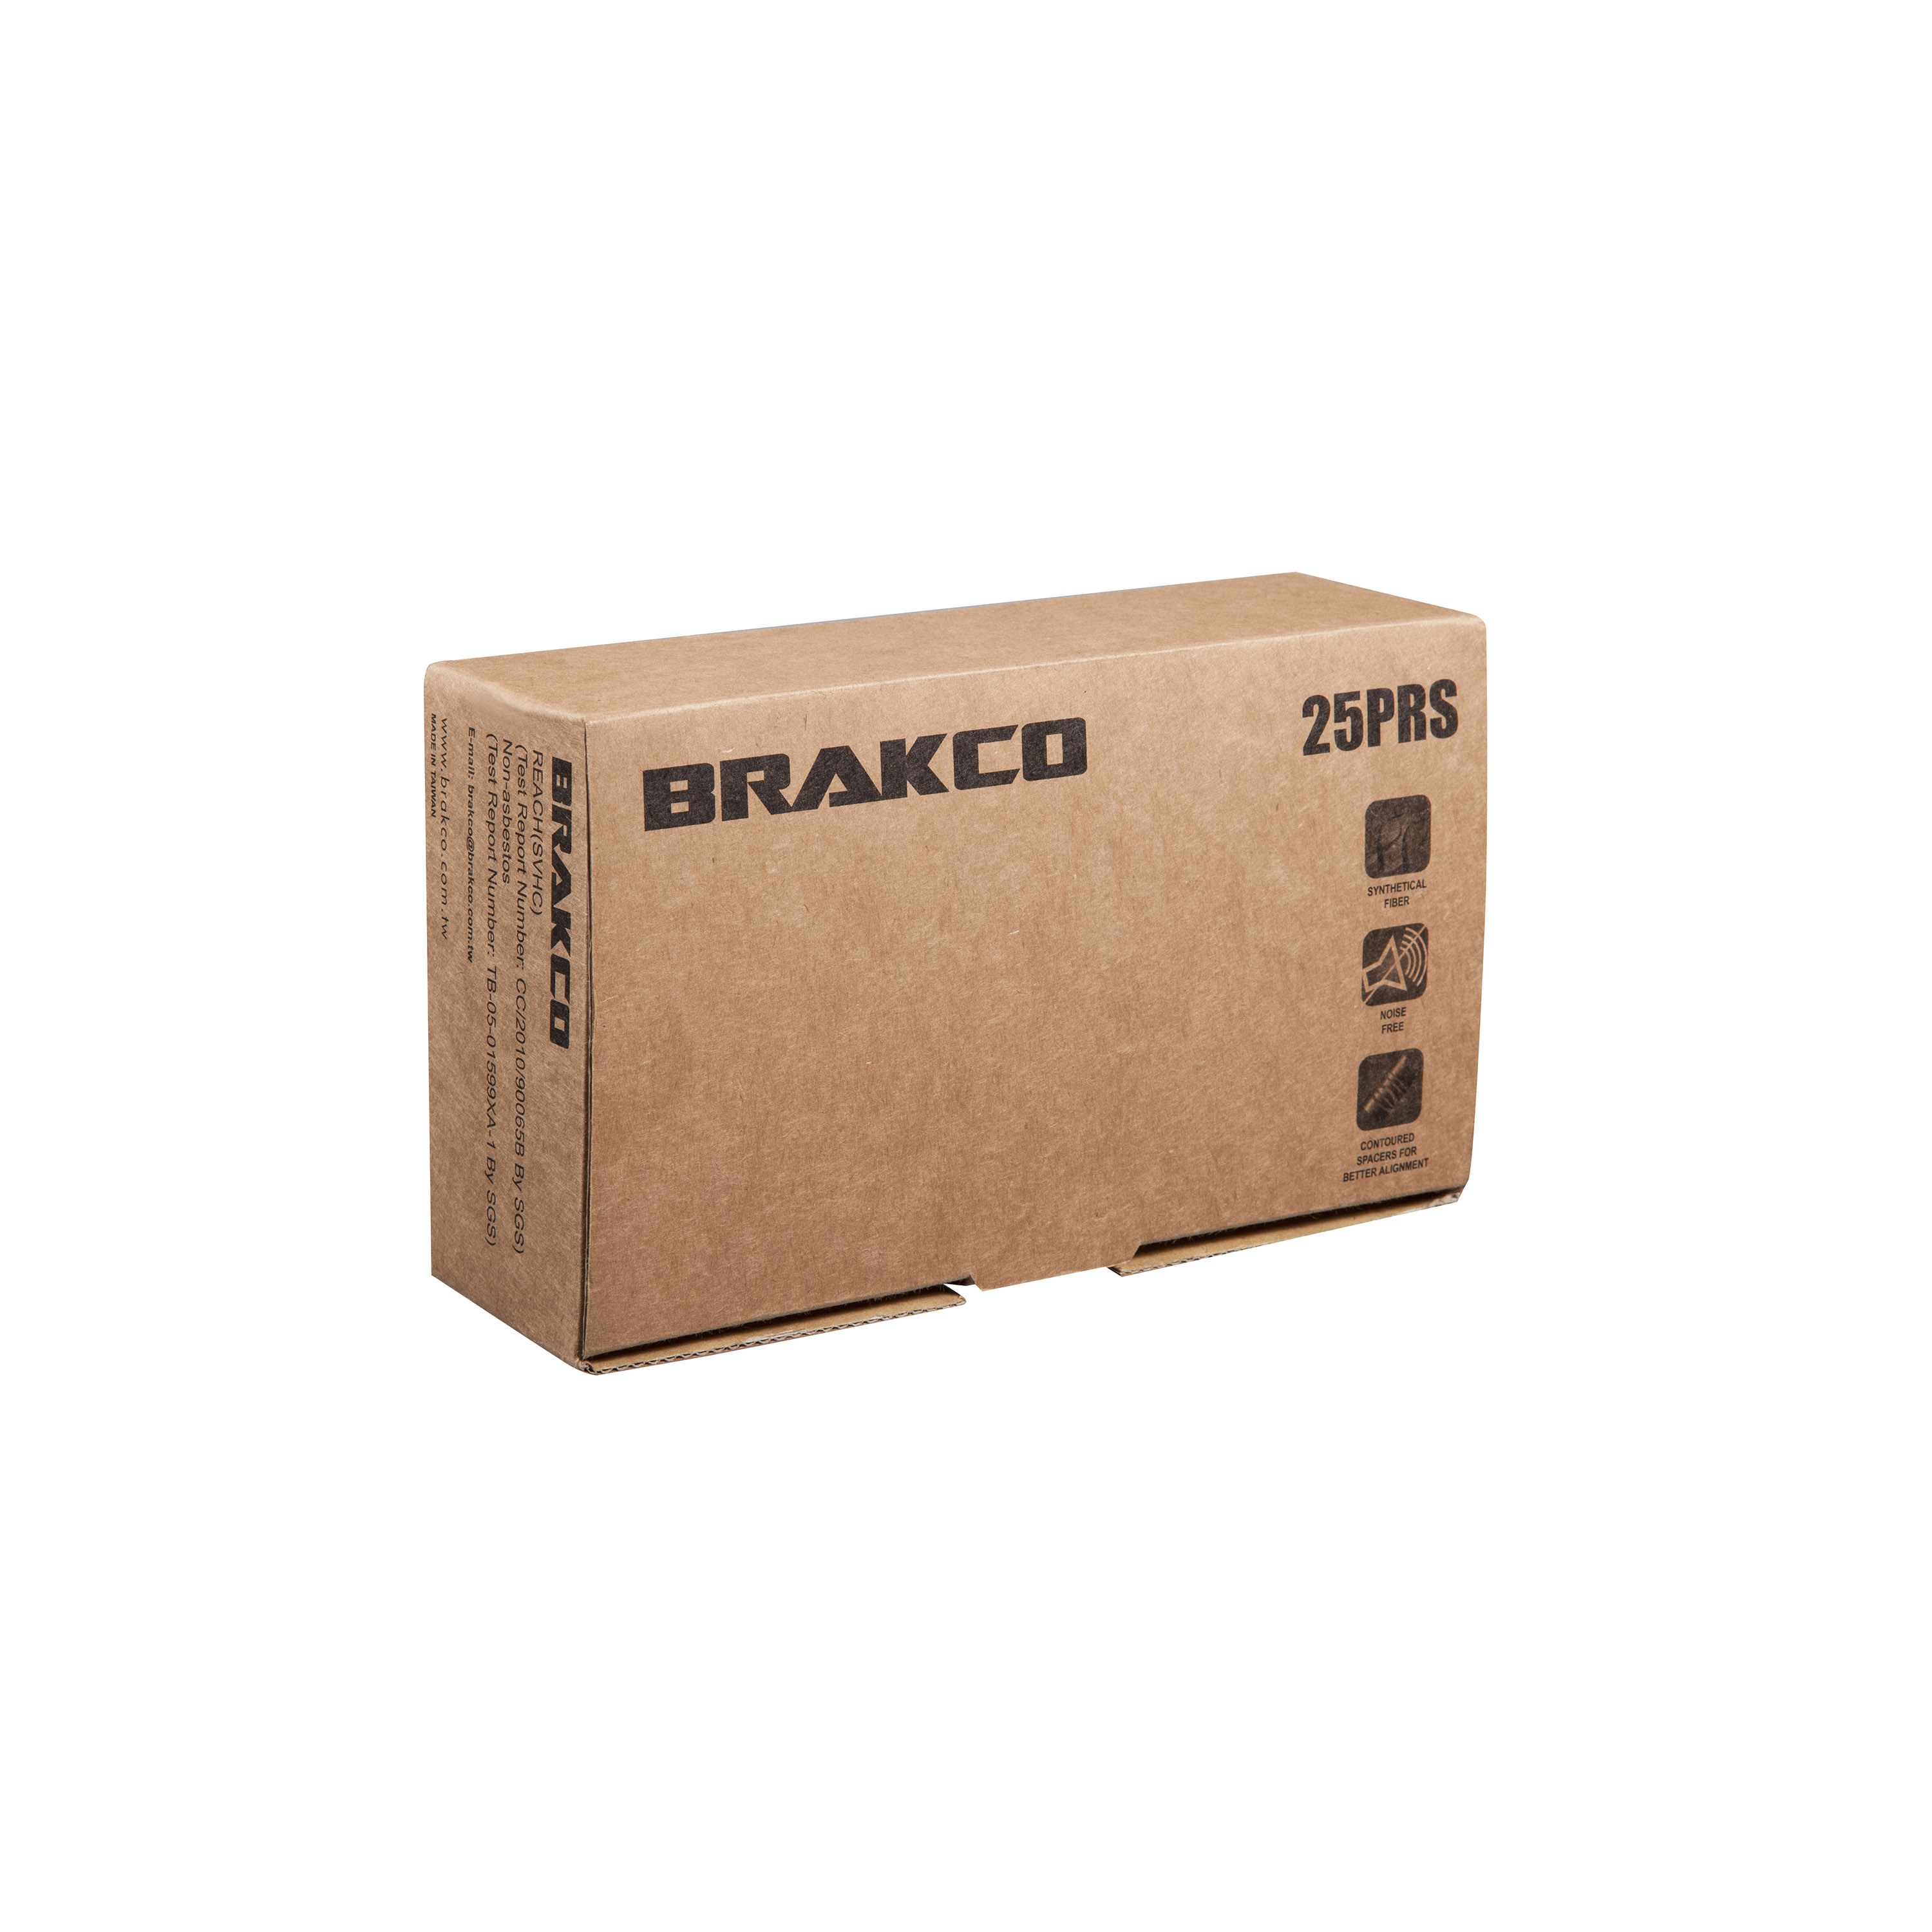 BRAKE SHOES CARDBOARD BOX